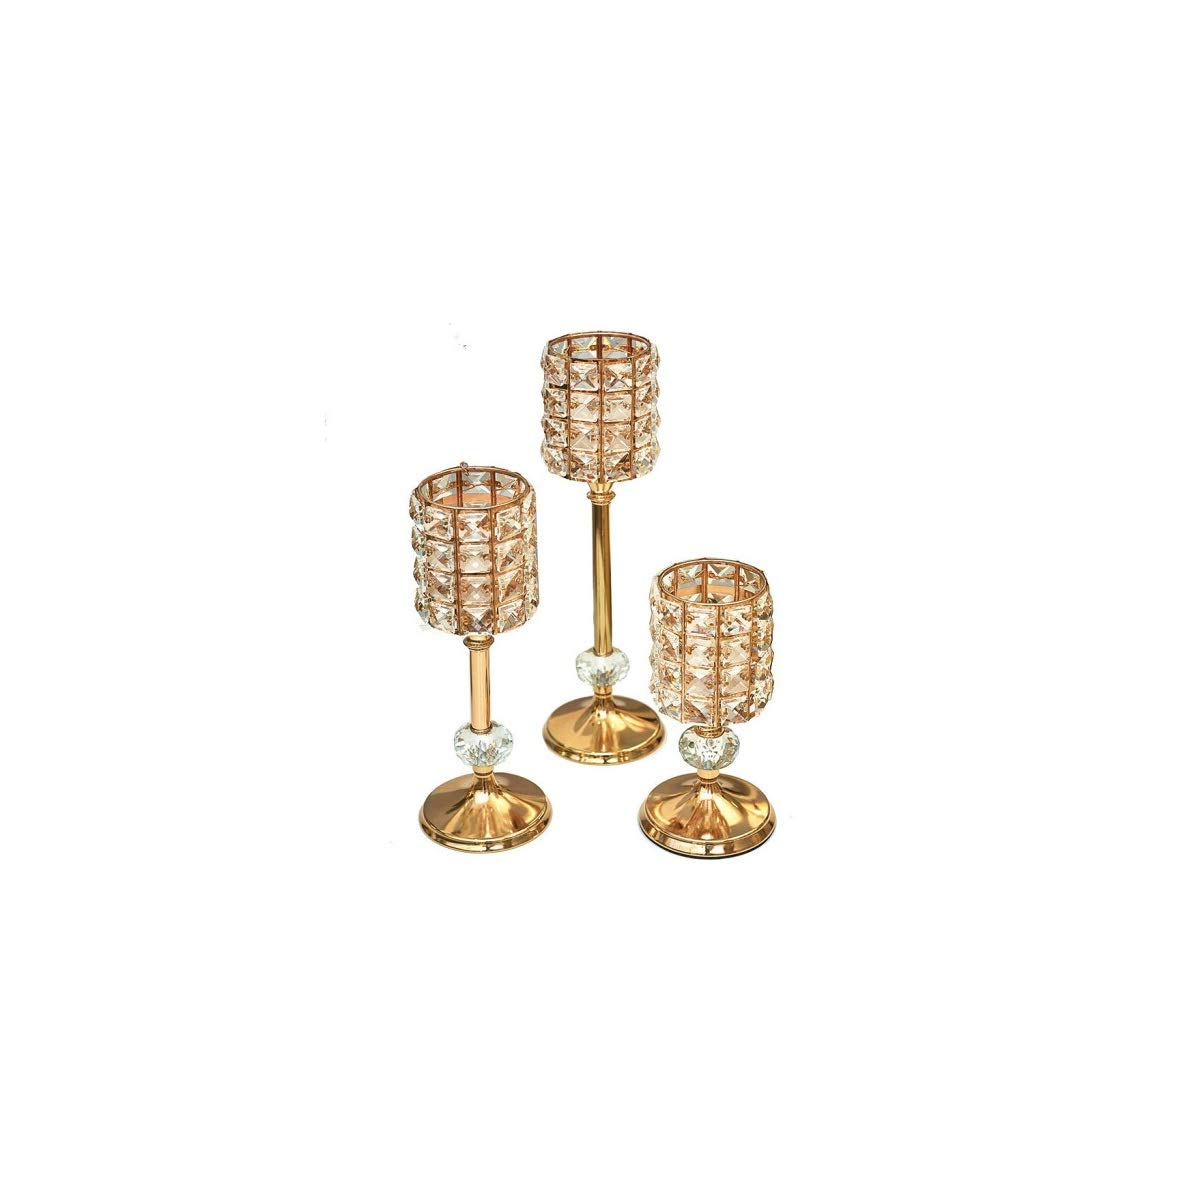 Juzhenma Crystal Golden Candlestick Three-Piece Set for Decorating The Living Room Table Wedding Hotel Model Room (Color : Gold)